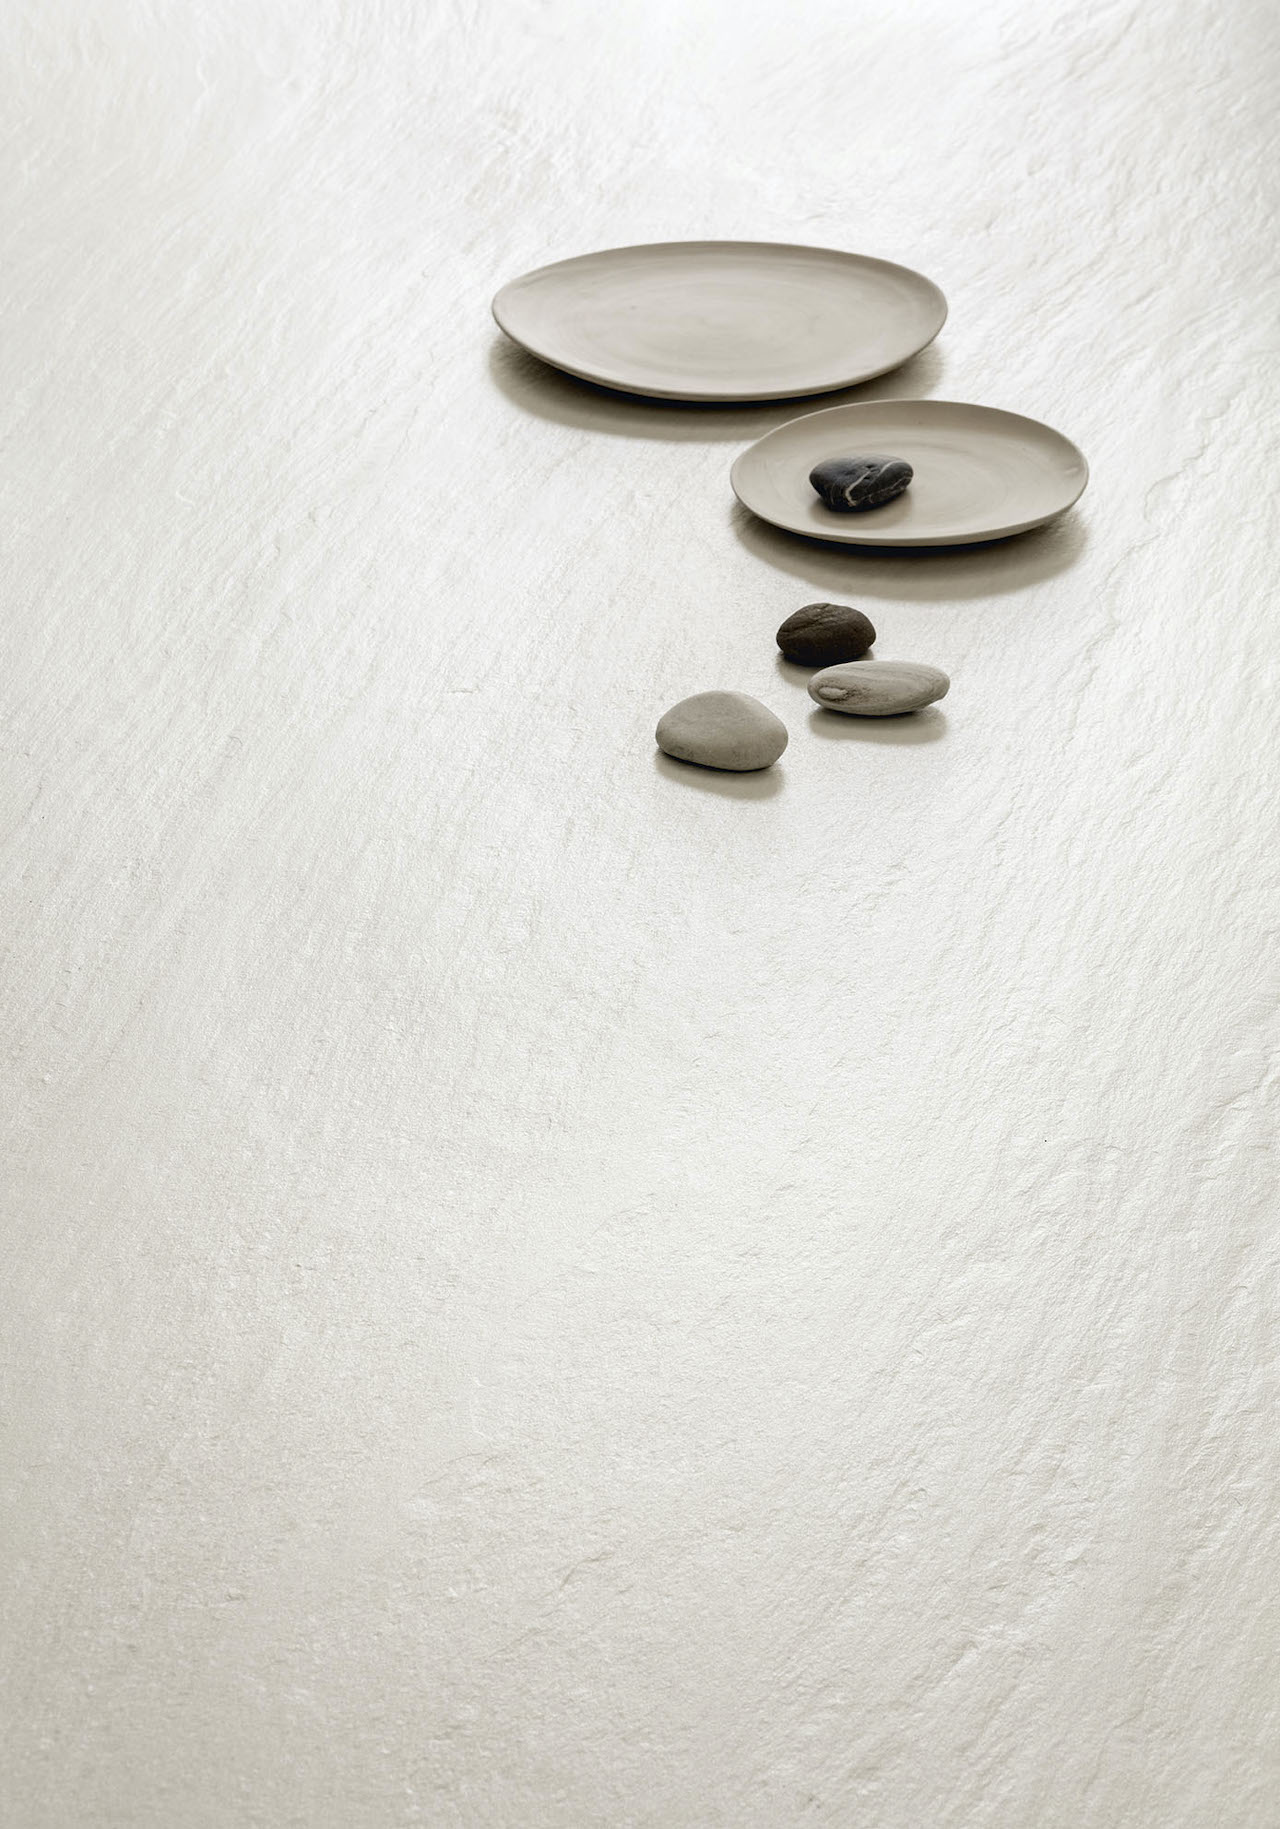 Surface Ardesia a Spacco finish Bianco, The I Naturali 2020 Collection, Laminam